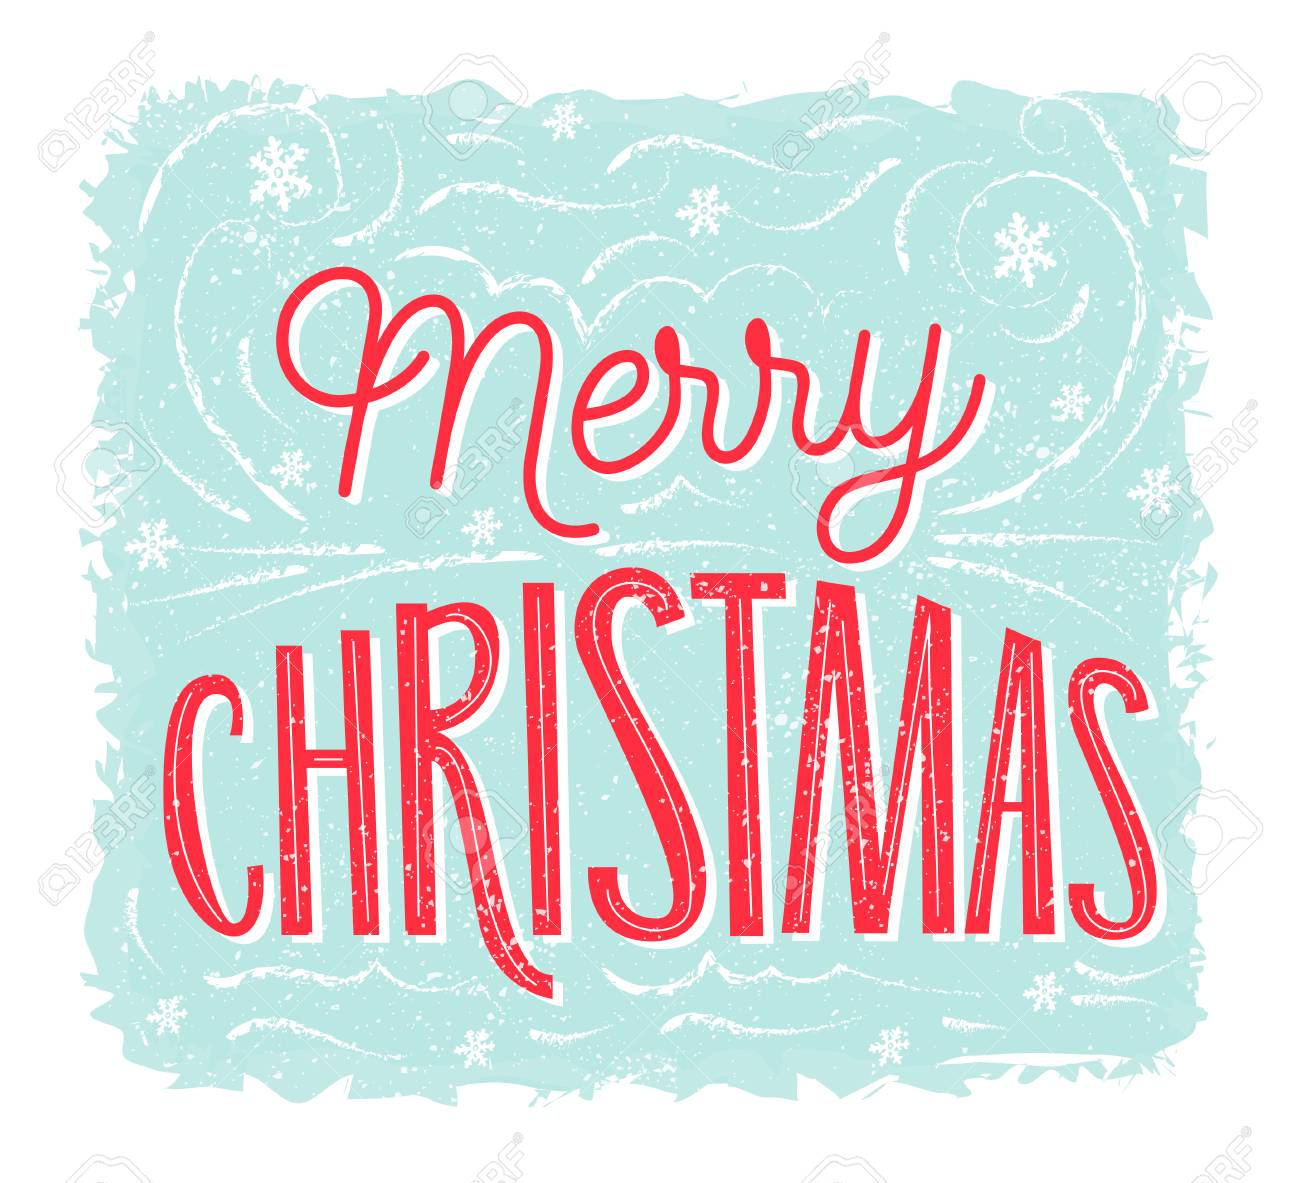 Merry Christmas Card With Lettering At Blue Frosty Background Vector Vintage Banner Design Stock Photo